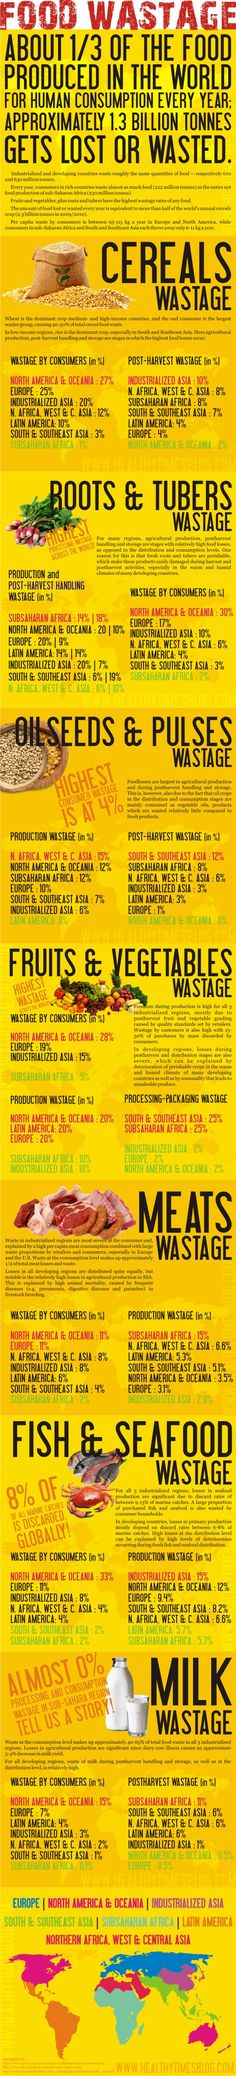 Food Wastage around the World Food Waste (Infographic)